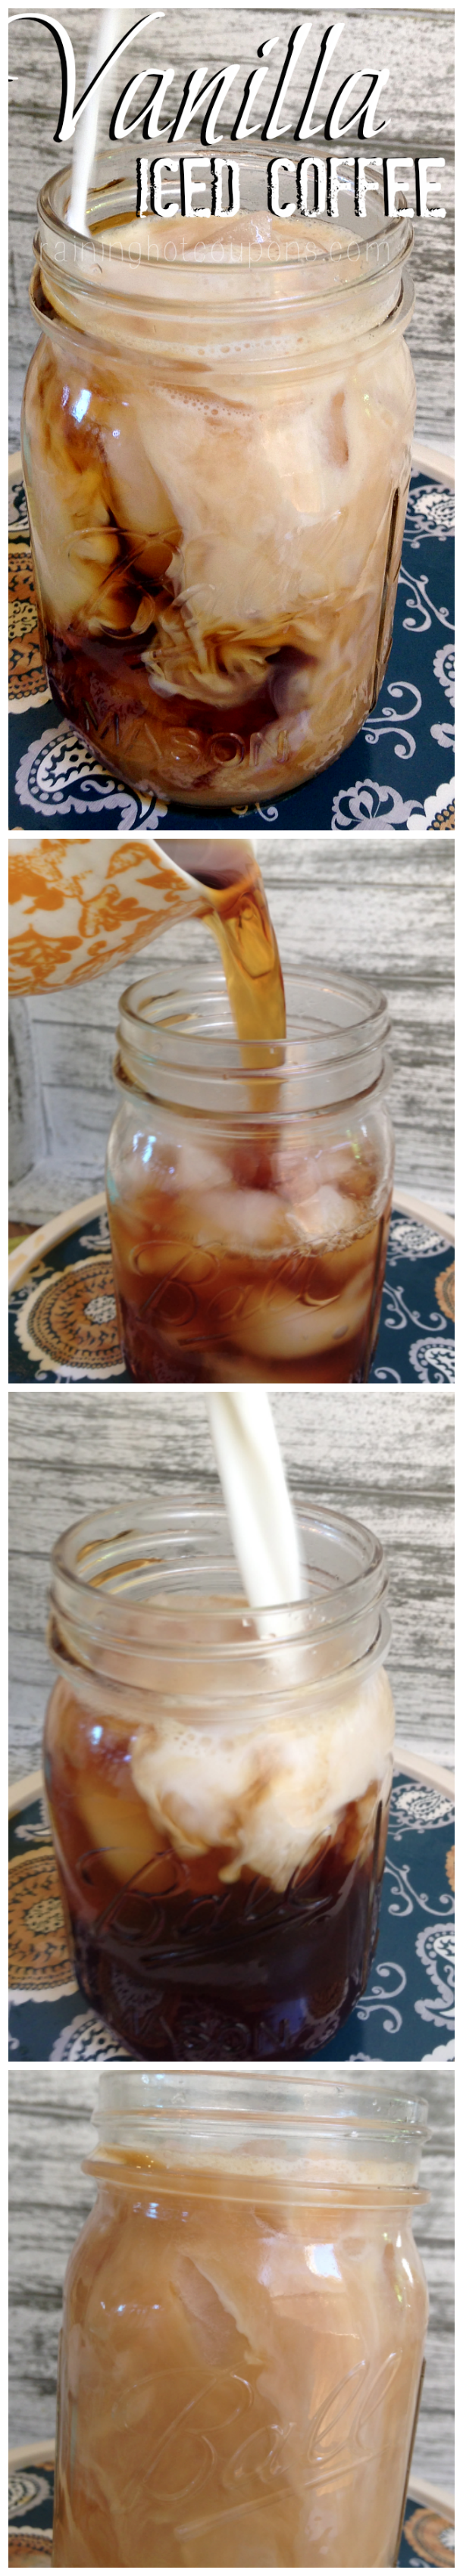 vanilla iced coffee collage.png Vanilla Iced Coffee